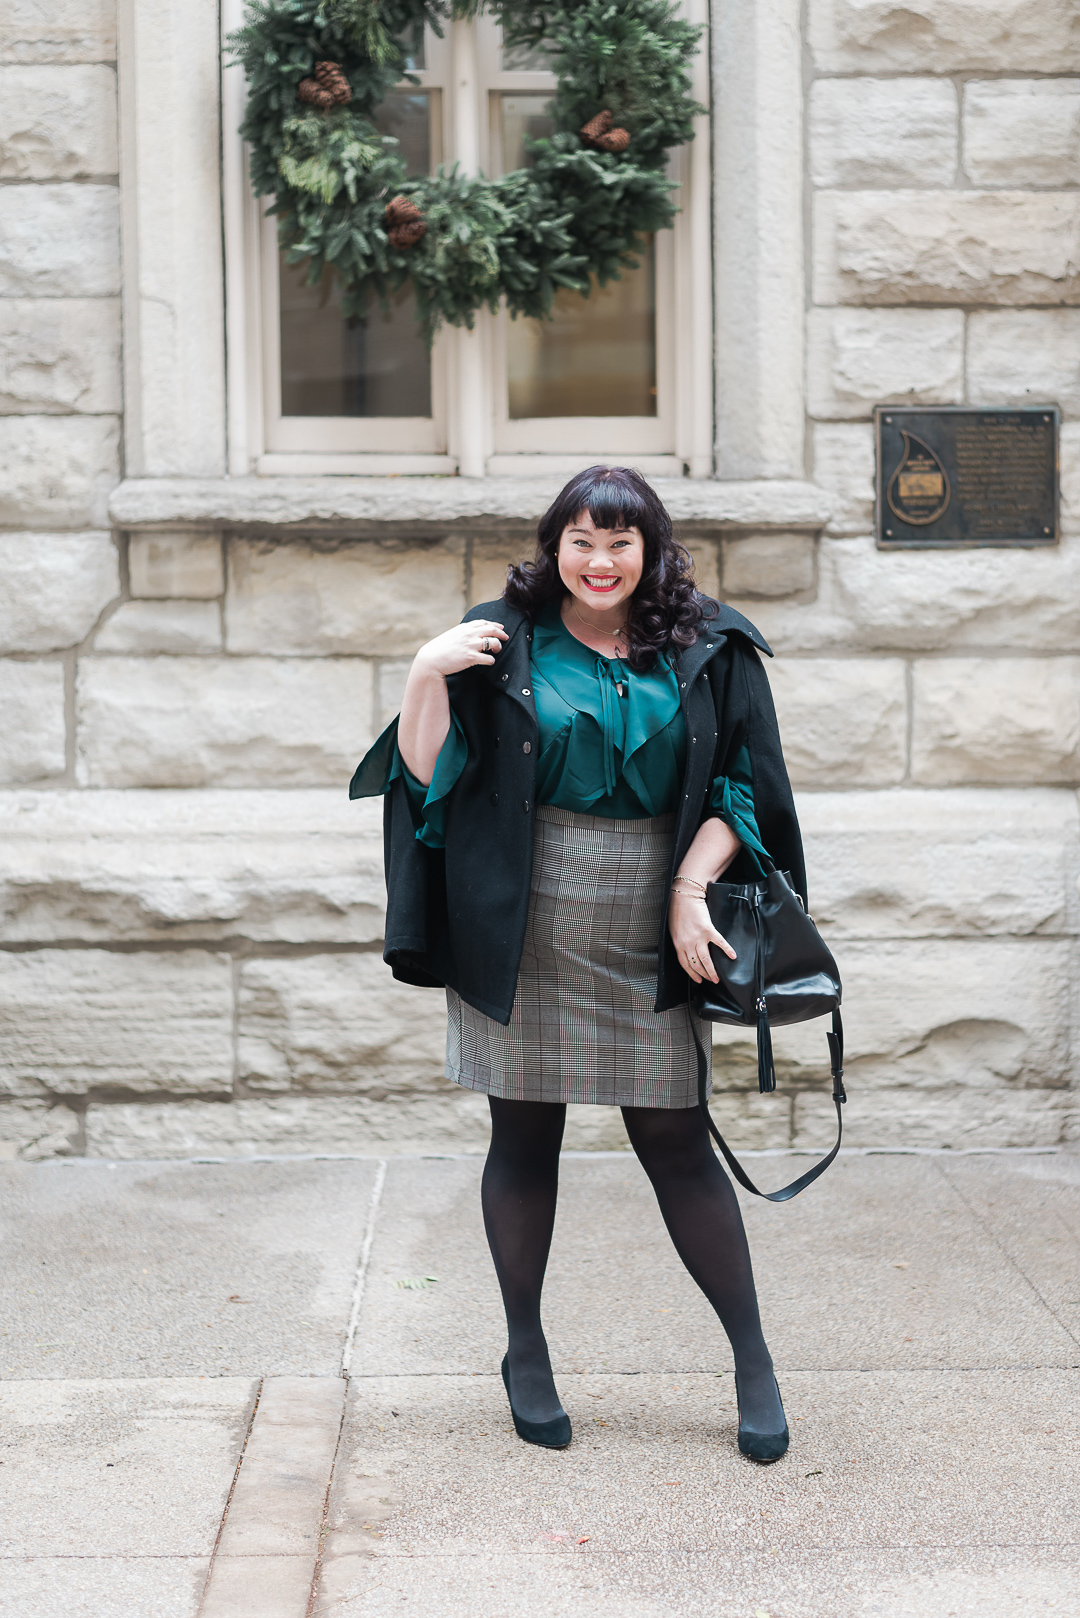 Emerald Green Plus Size, Macy's, INC green ruffled top, Plus Size Style, Plus Size Fashion, Style Plus Curves, Chicago Blogger, Chicago Plus Size Blogger, Plus Size Blogger, Amber McCulloch